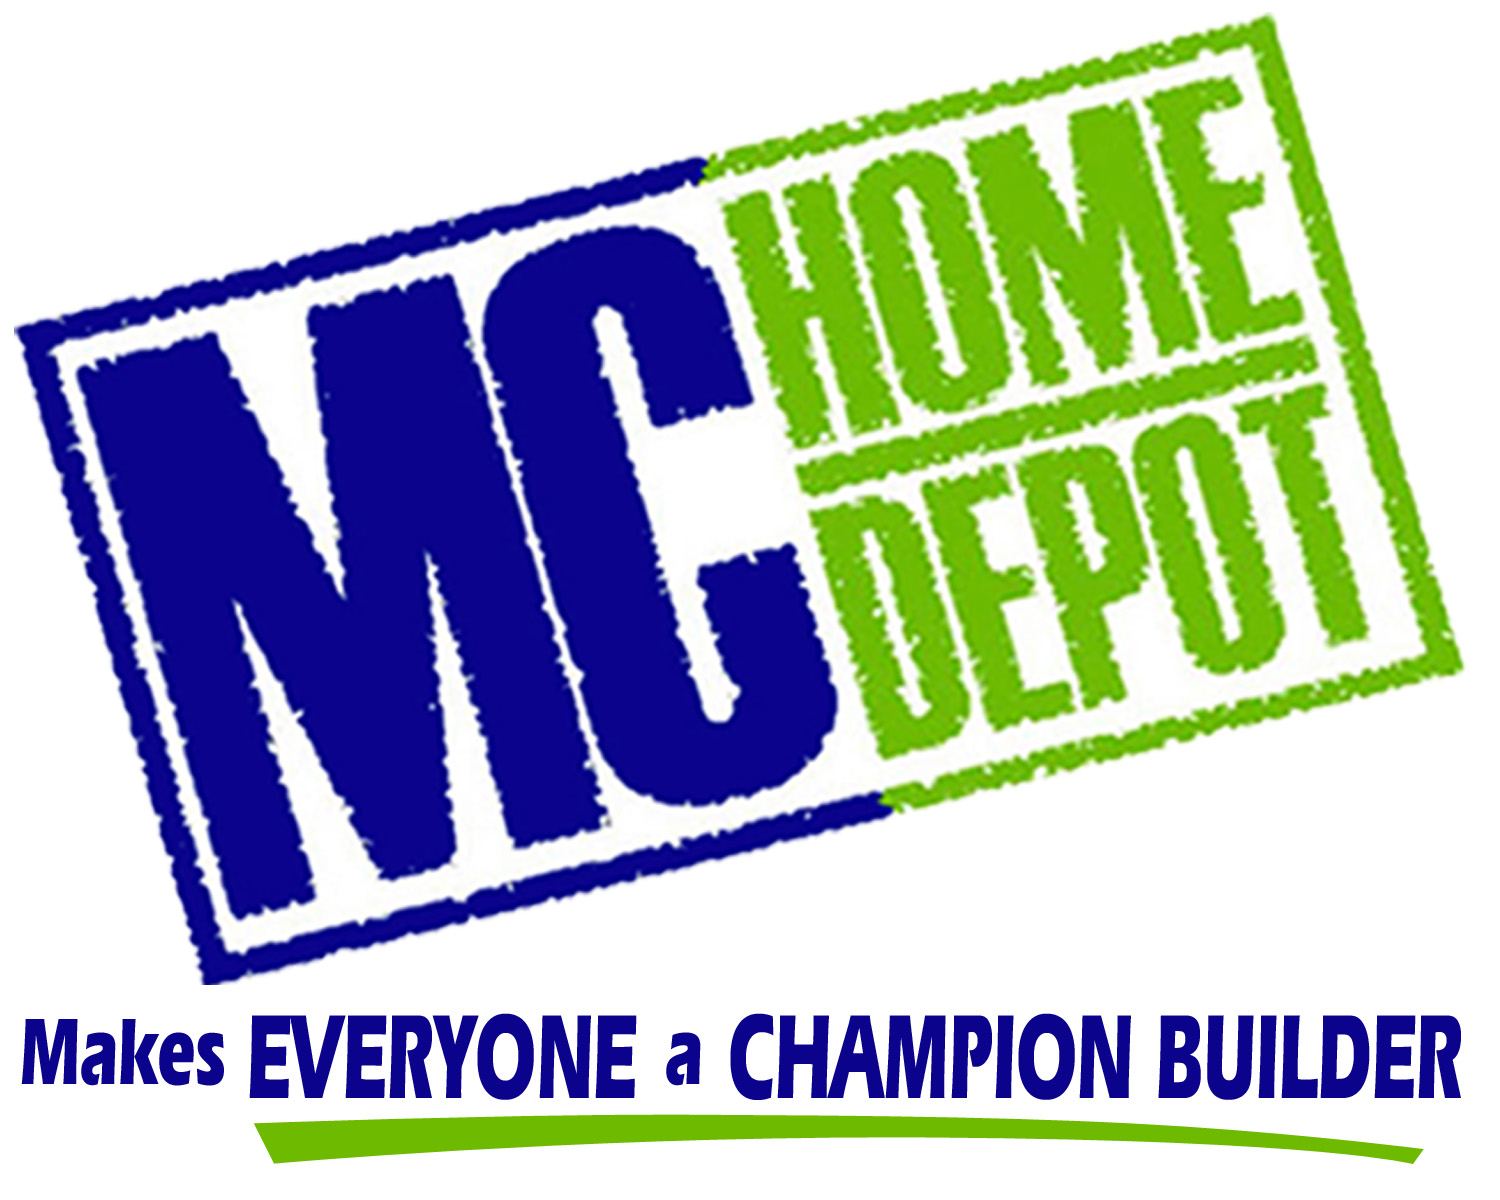 Mc Home Depot Pampanga From Pampanga Central Luzon Is Looking For  # Muebles Pampanga